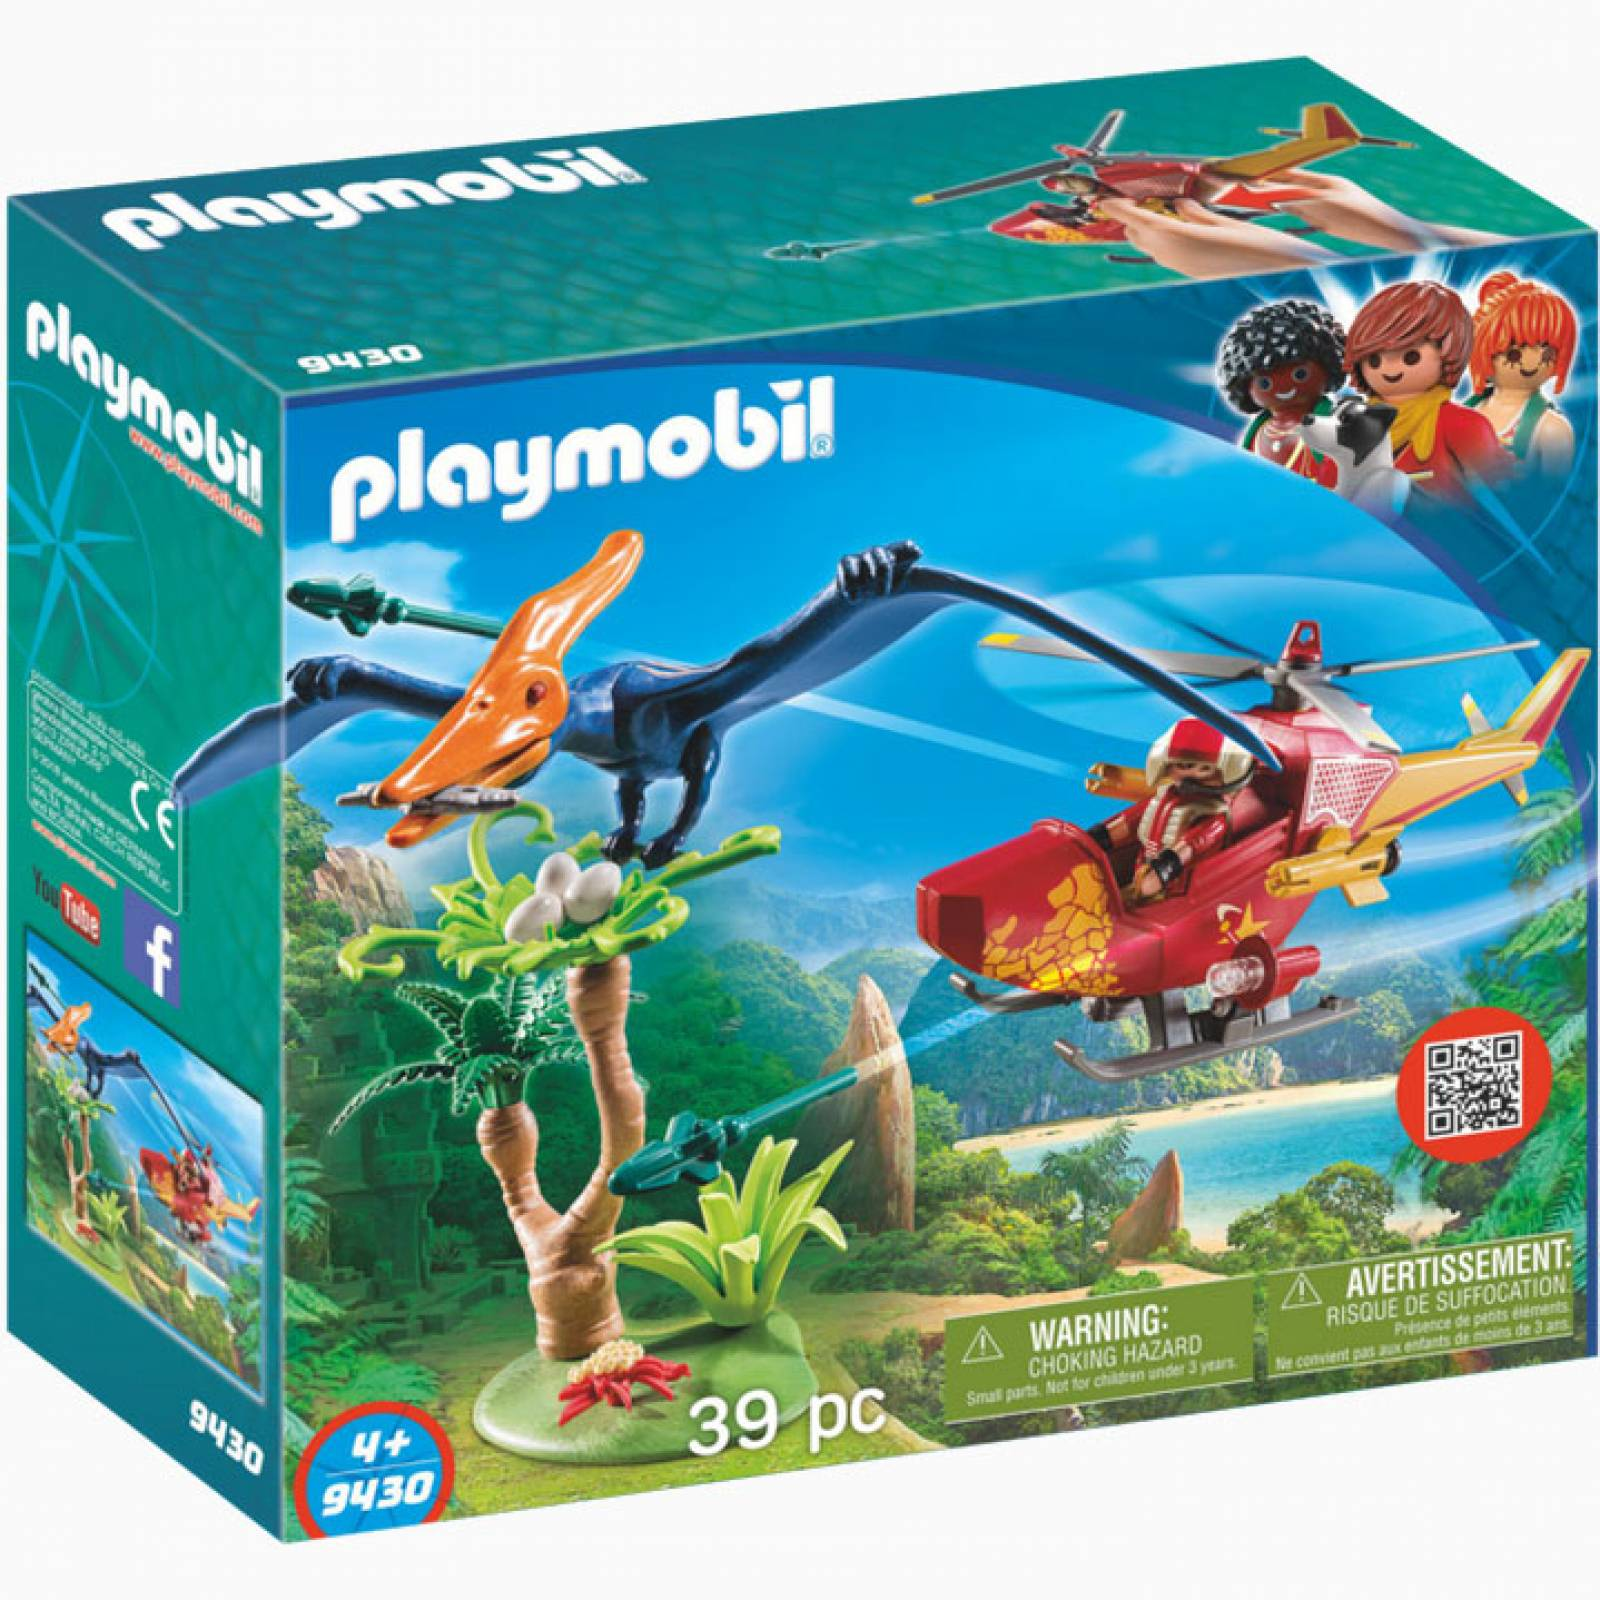 Adventure Copter With Pterodactyl Playmobil  Dinosaurs 9430 thumbnails